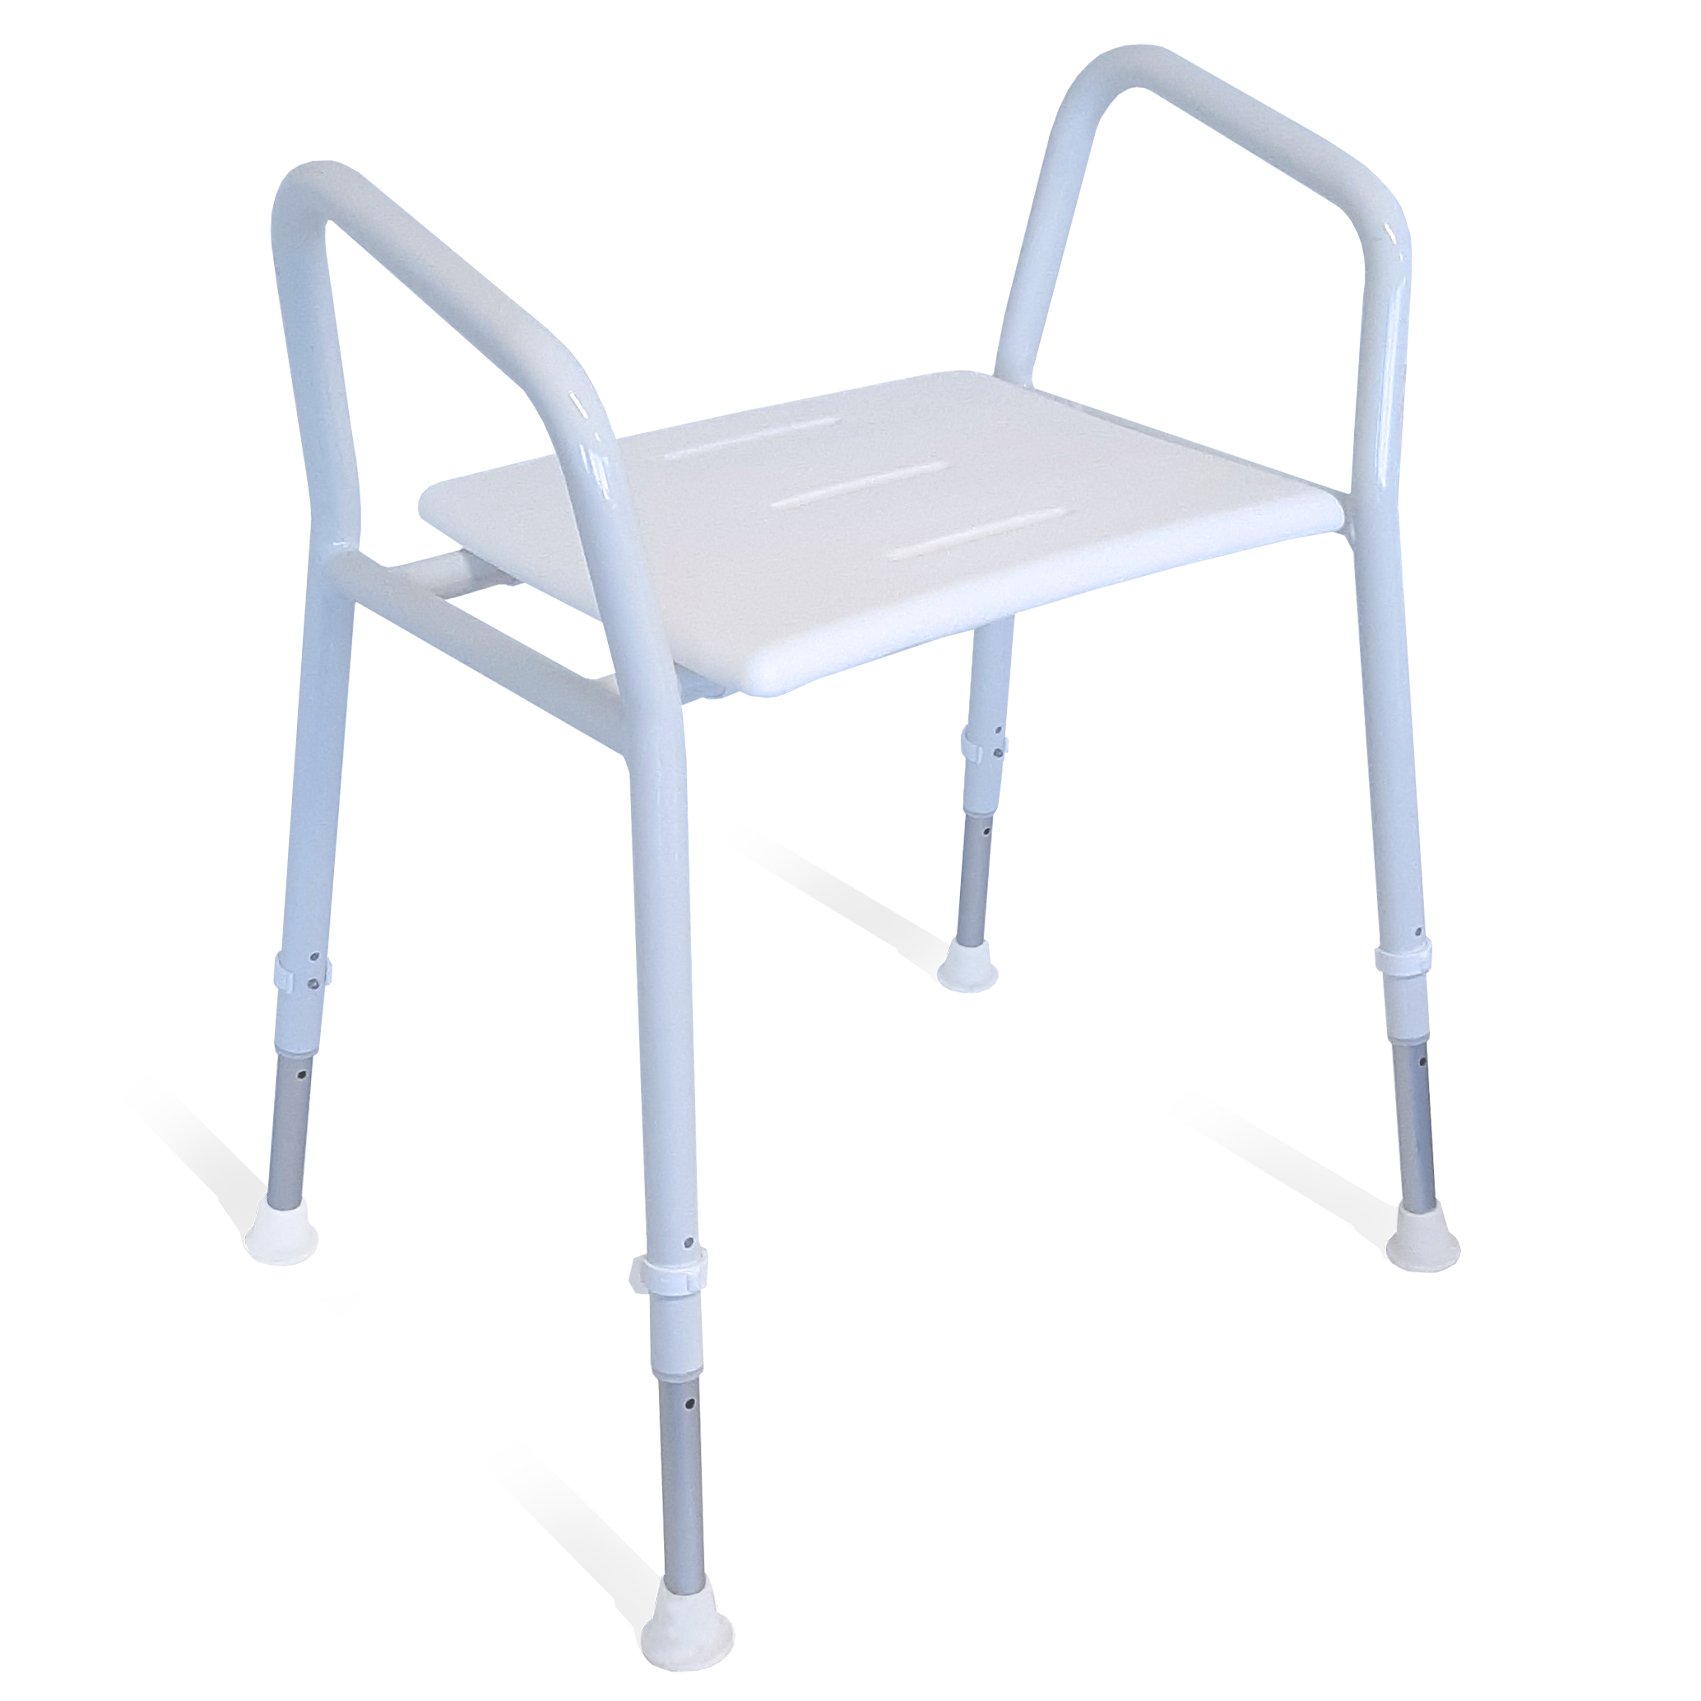 HEAVY DUTY SHOWER STOOL  RATED TO 159KG BARICARE RG5401